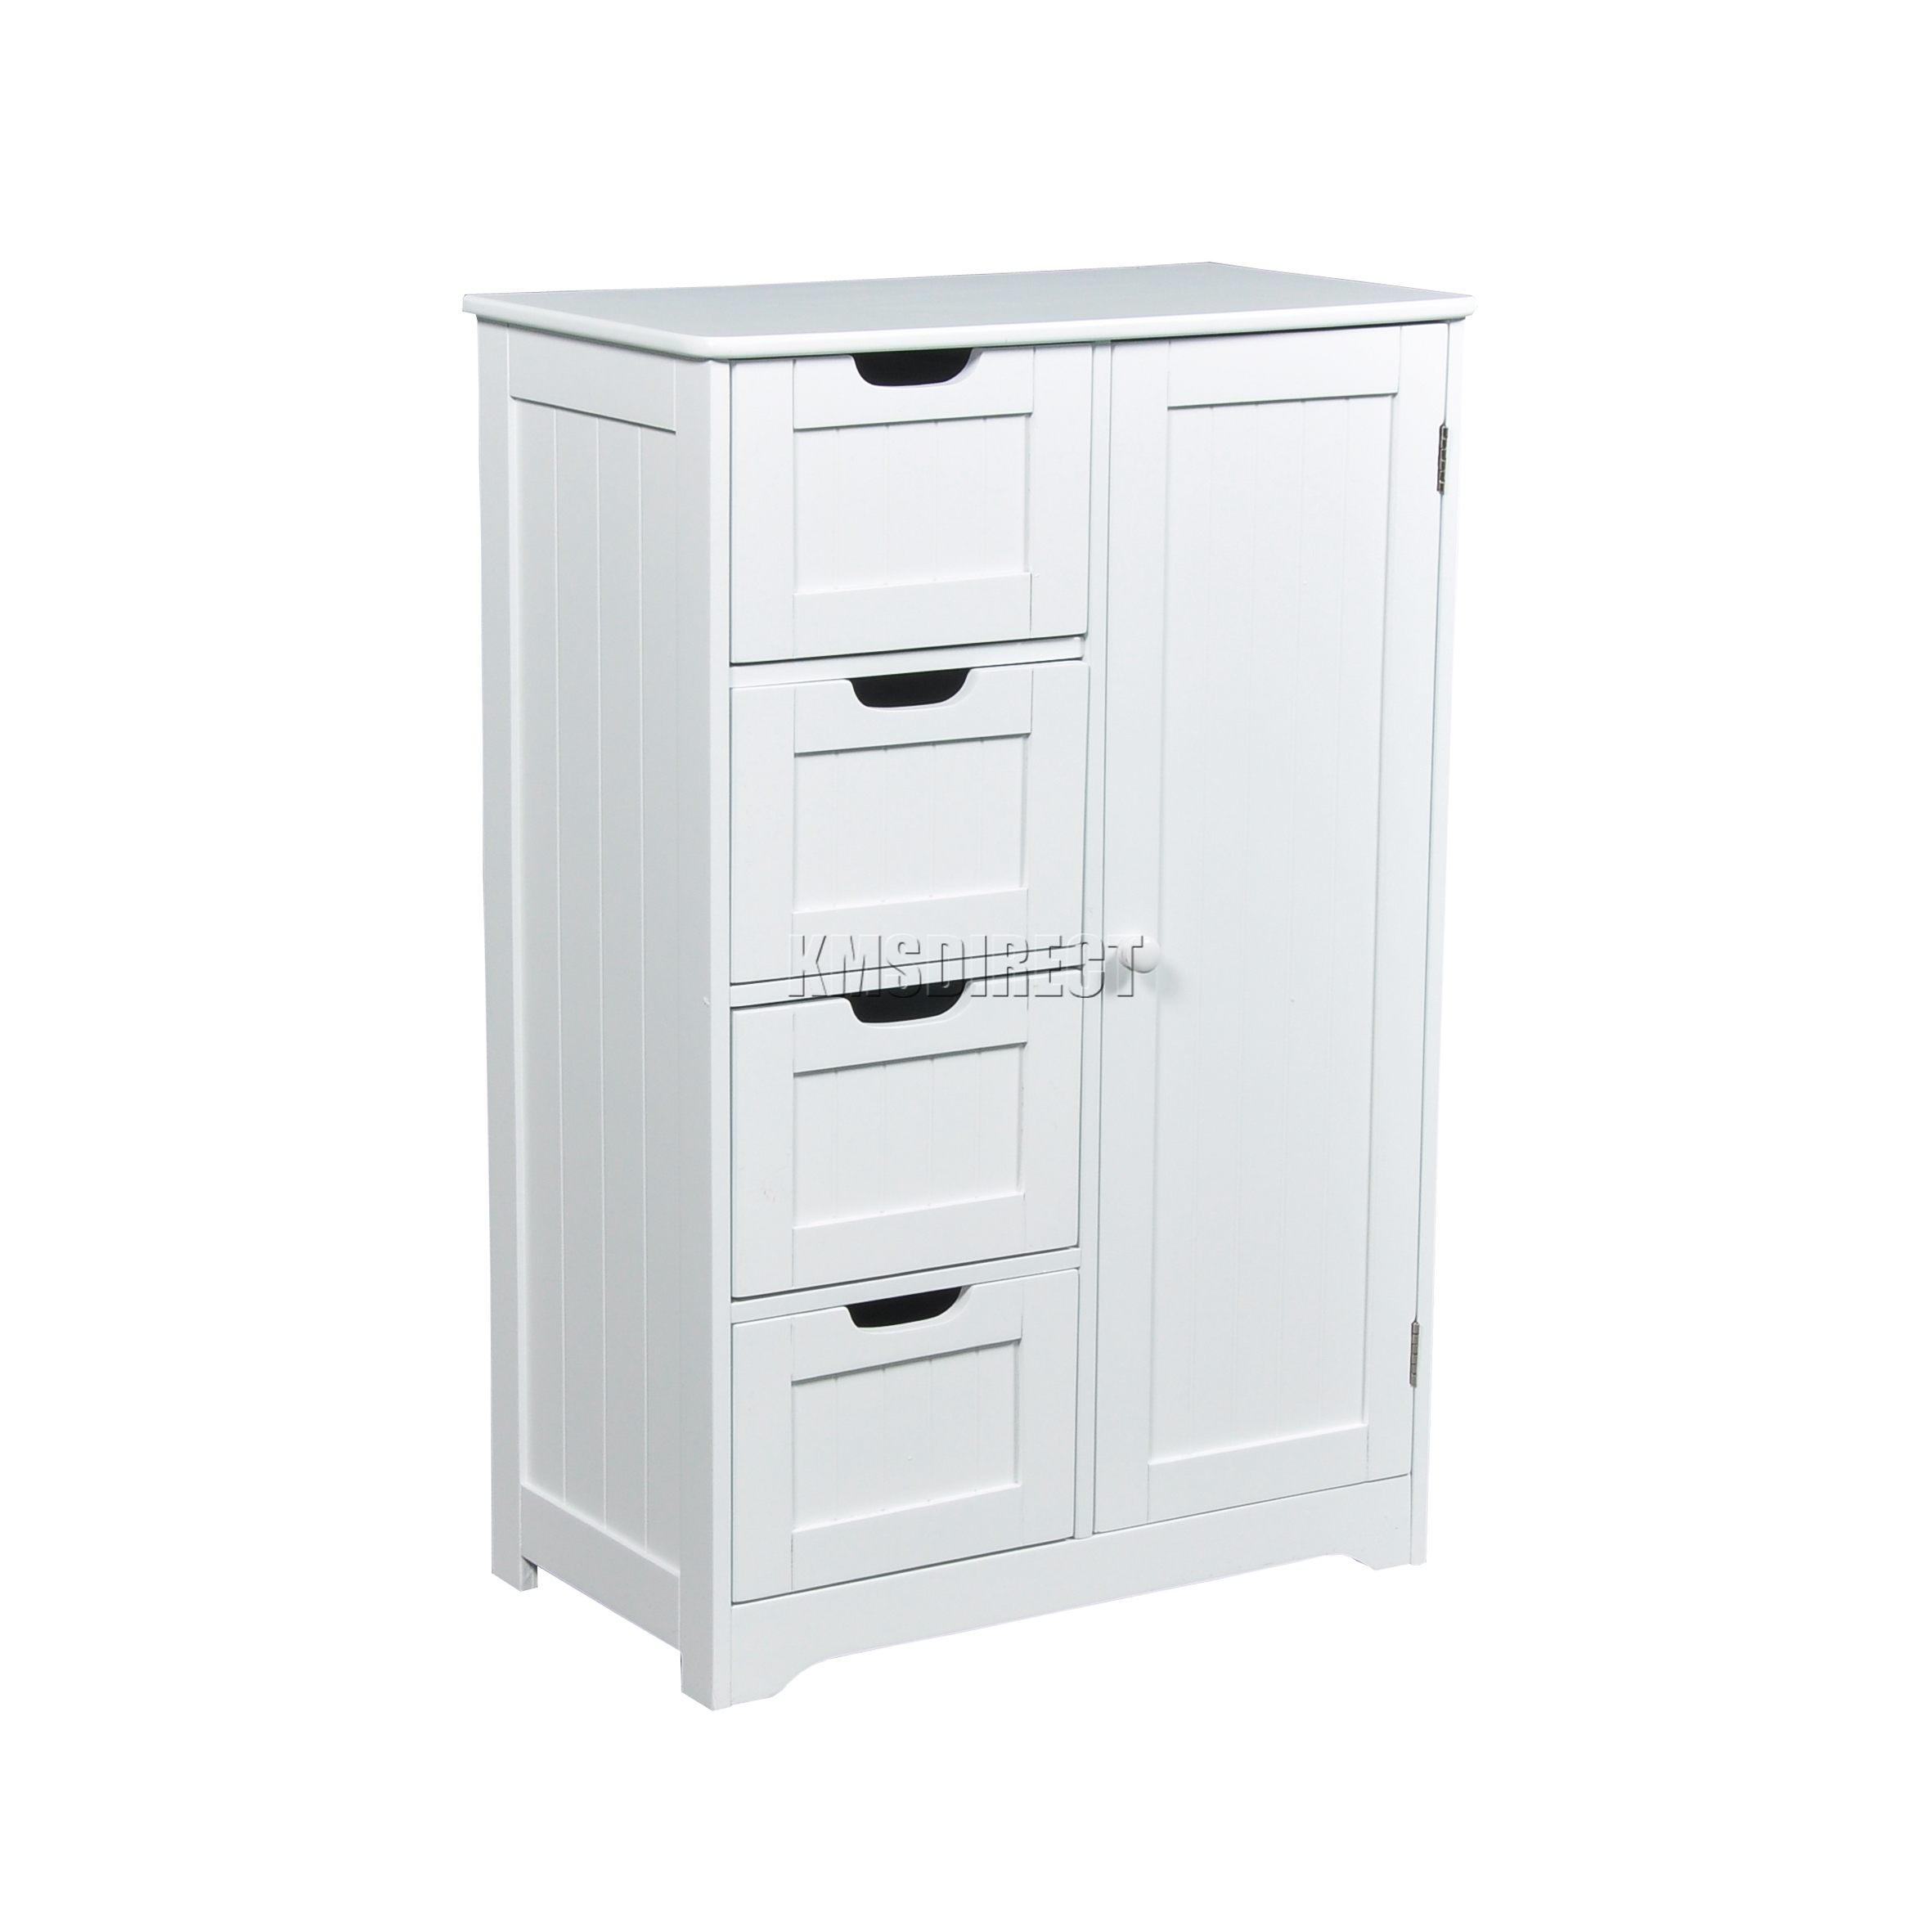 4 drawer bathroom cabinet foxhunter white wooden 4 drawer bathroom storage cupboard 15307